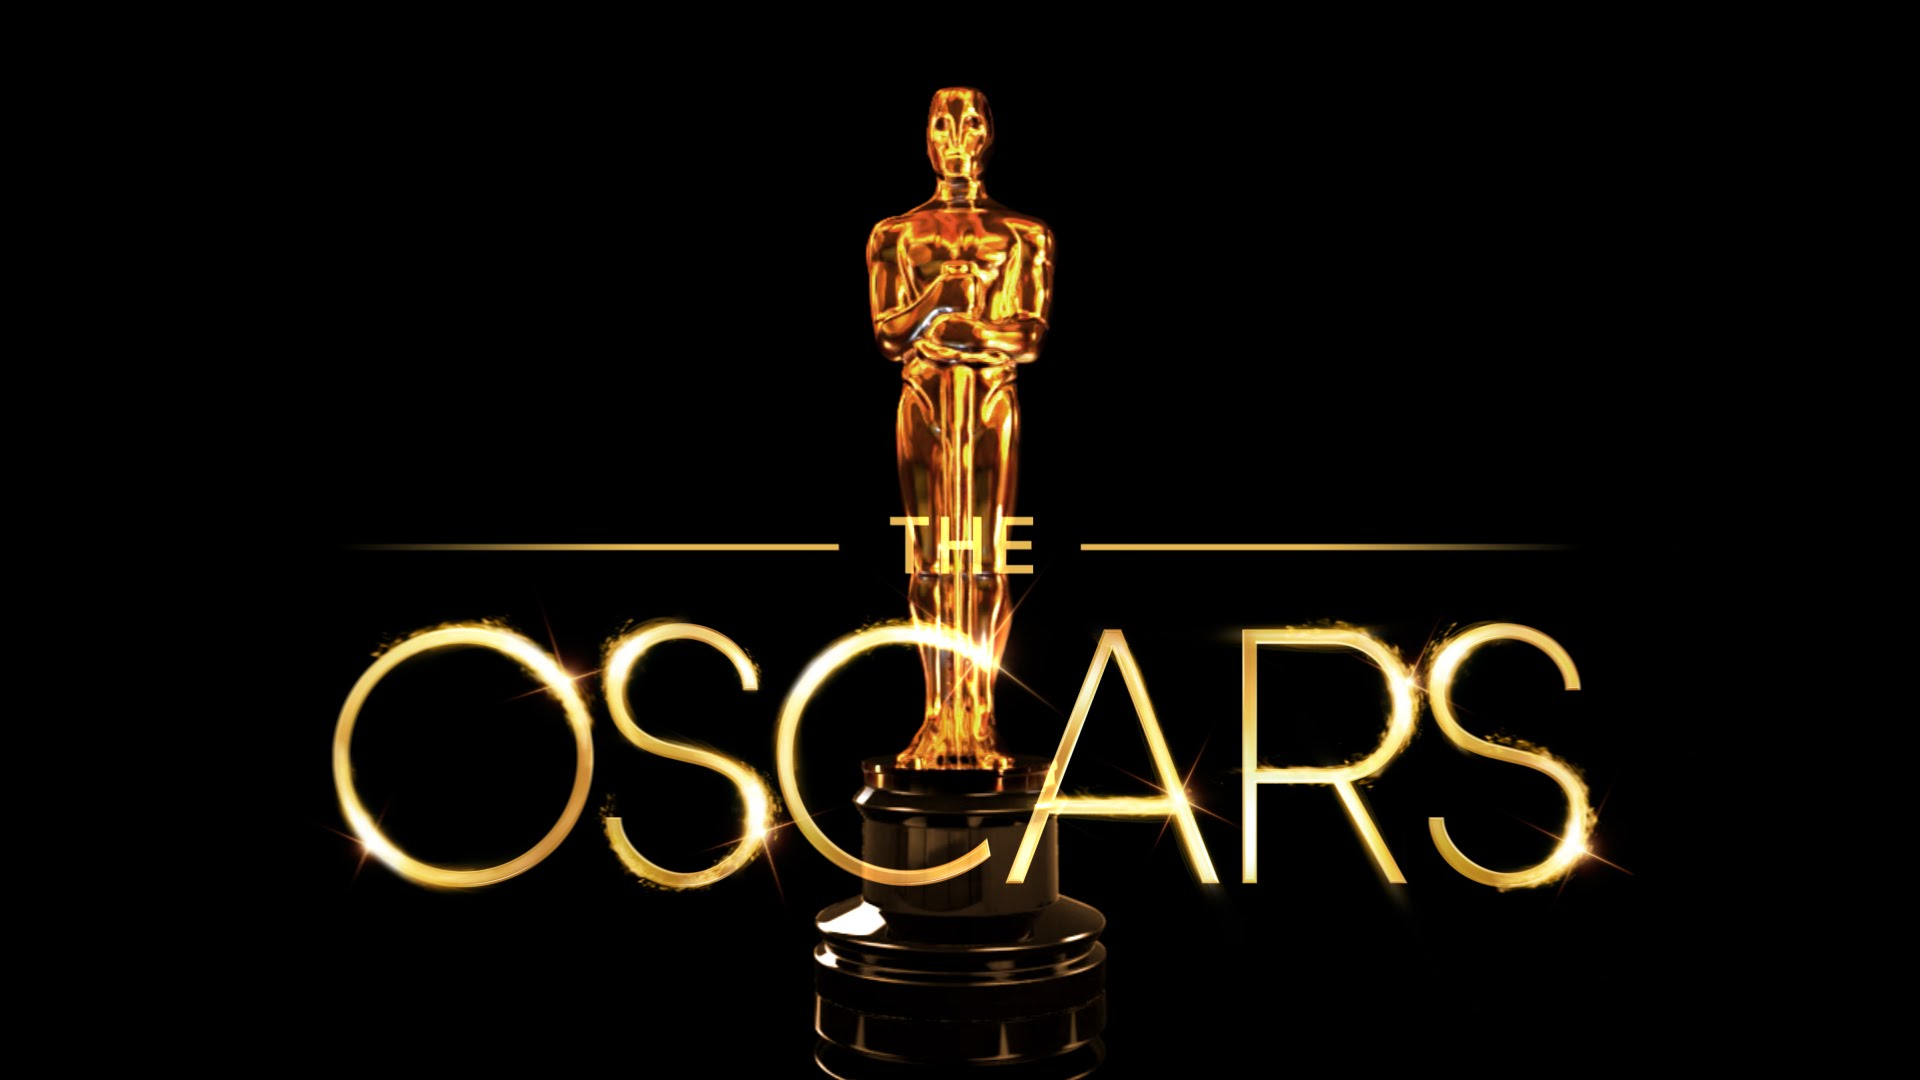 Oscars, Academy Awards, award show, celebrities, film, movies, acting, best